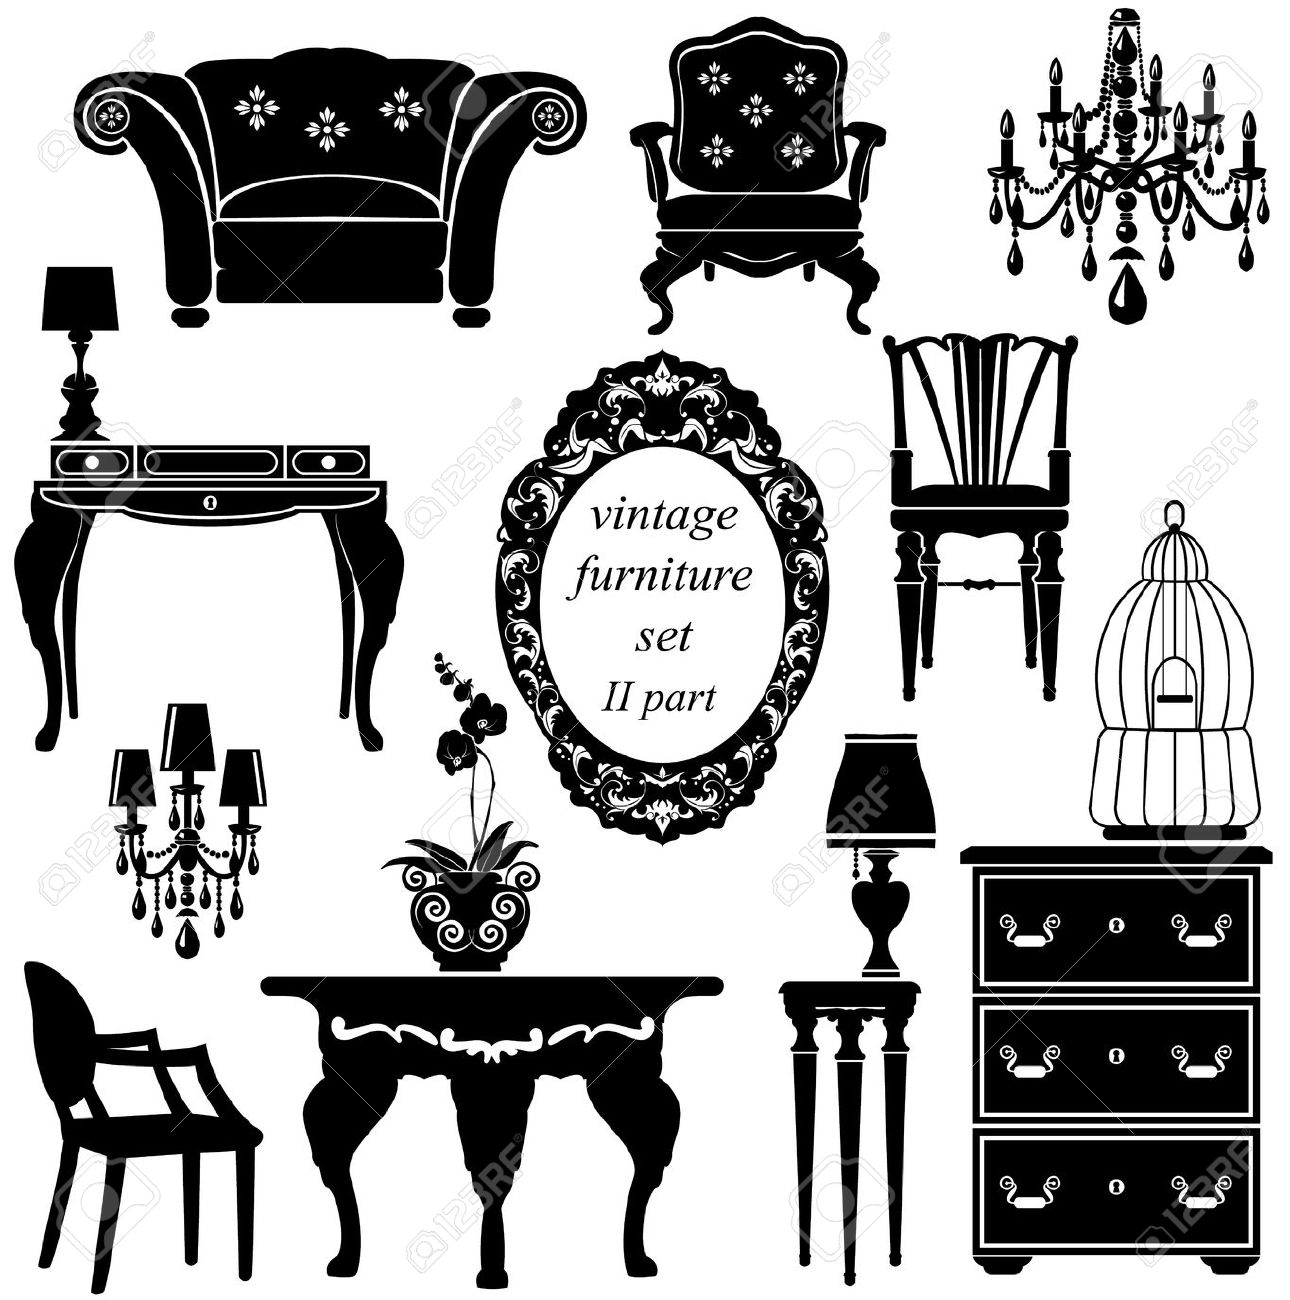 7,223 Household Furniture Stock Illustrations, Cliparts And.